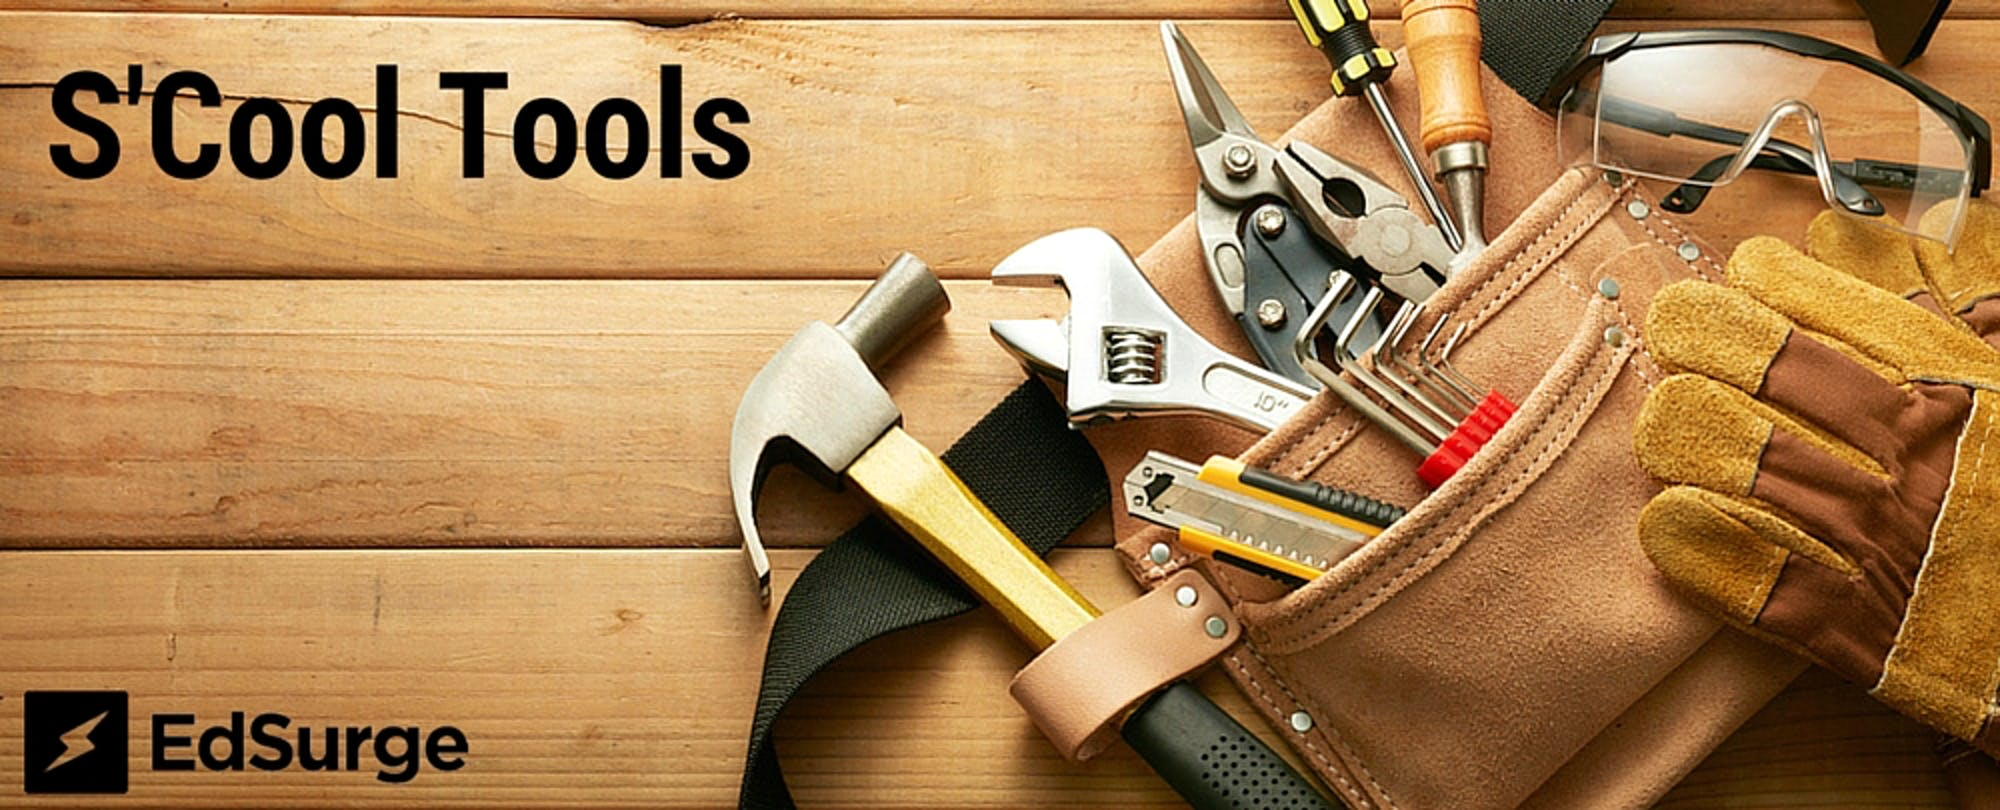 The Top 10 Most Popular S'Cool Tools of 2016 So Far